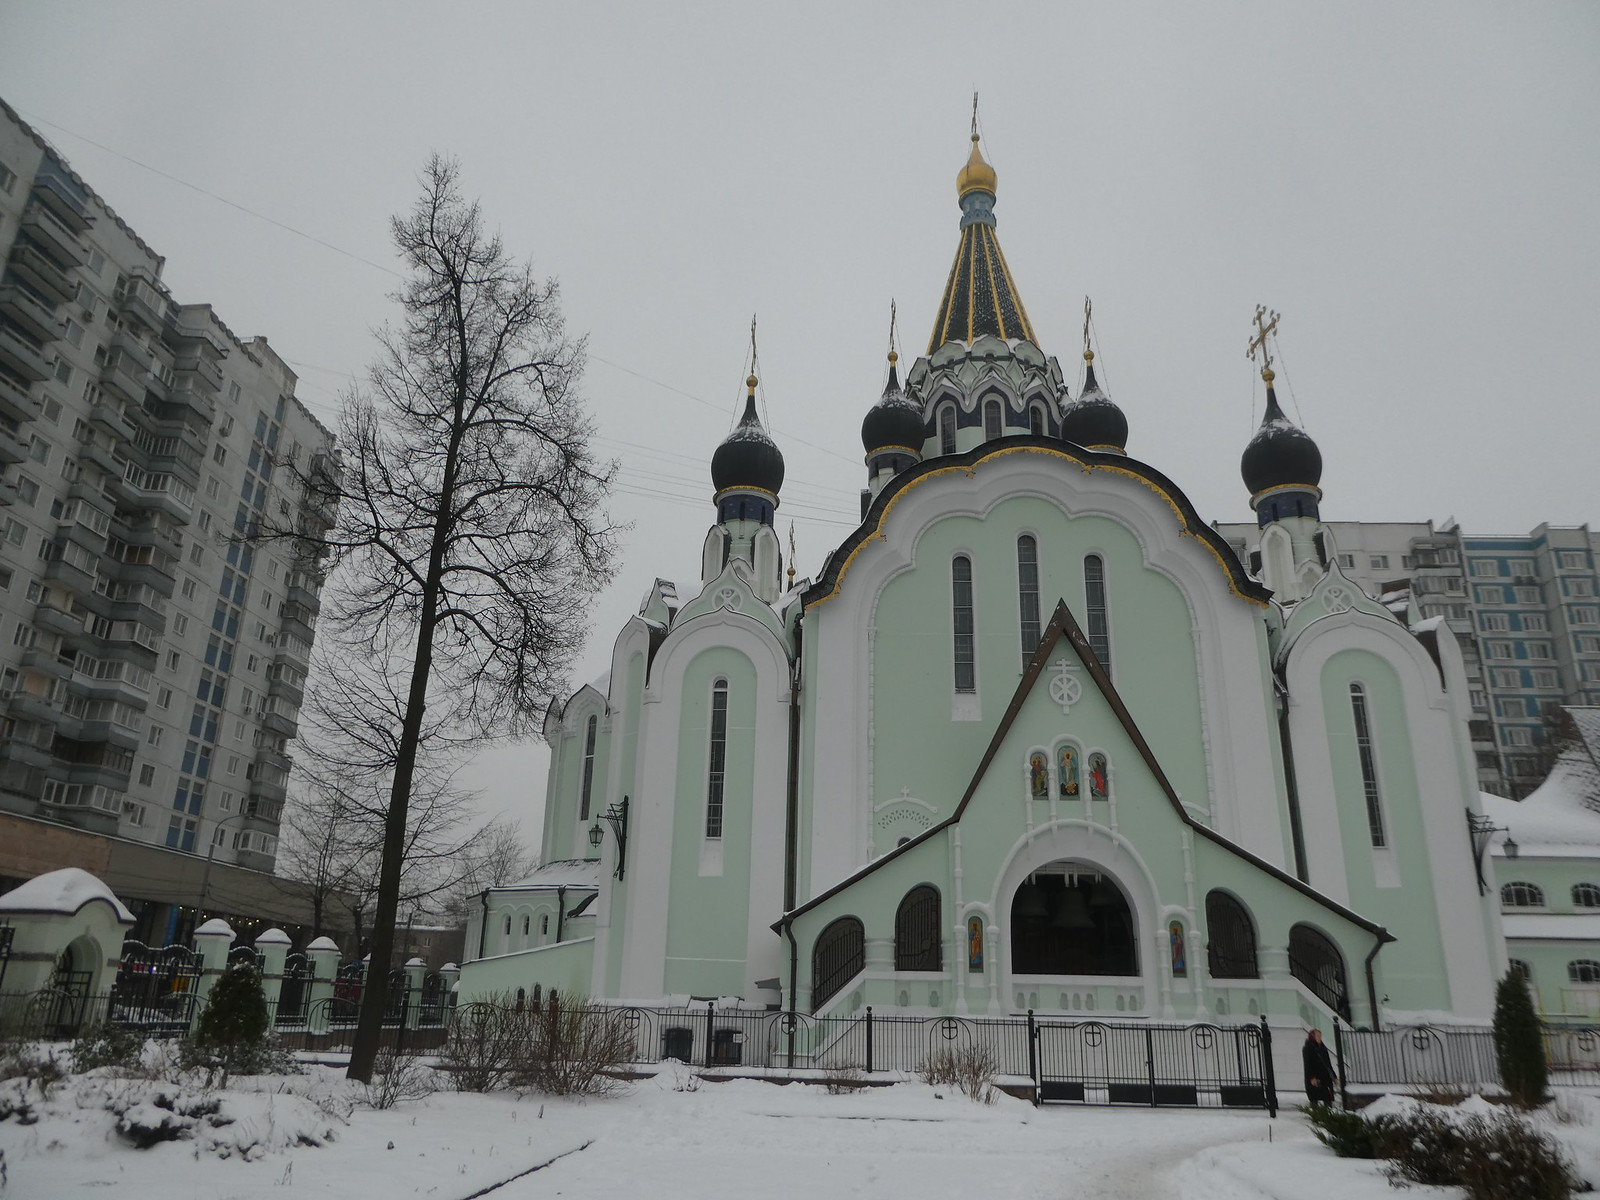 Church of the Resurrection, Sokolniki, Moscow